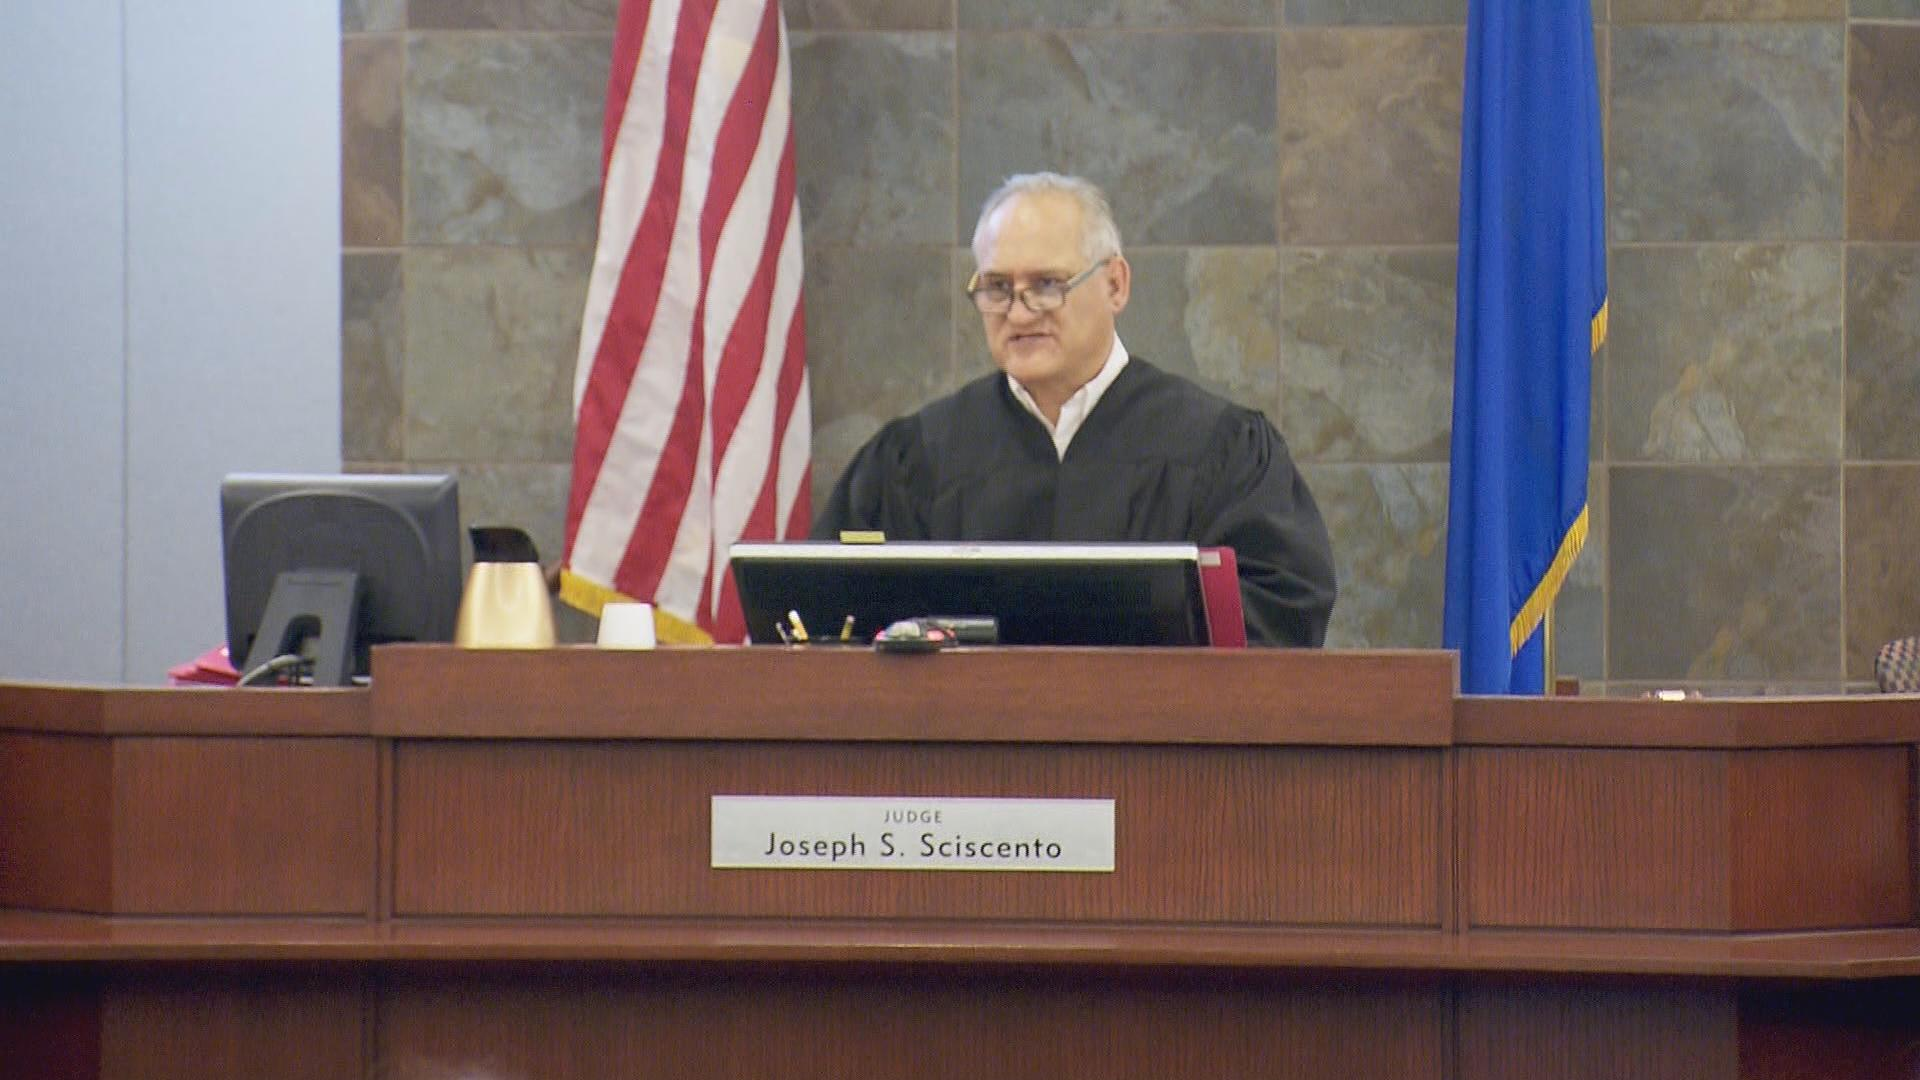 Judge Joseph S. Sciscento presides over court Wednesday, May 10, 2017, at the Regional Justice Center in Las Vegas. (Bradford Boyer/KSNV)